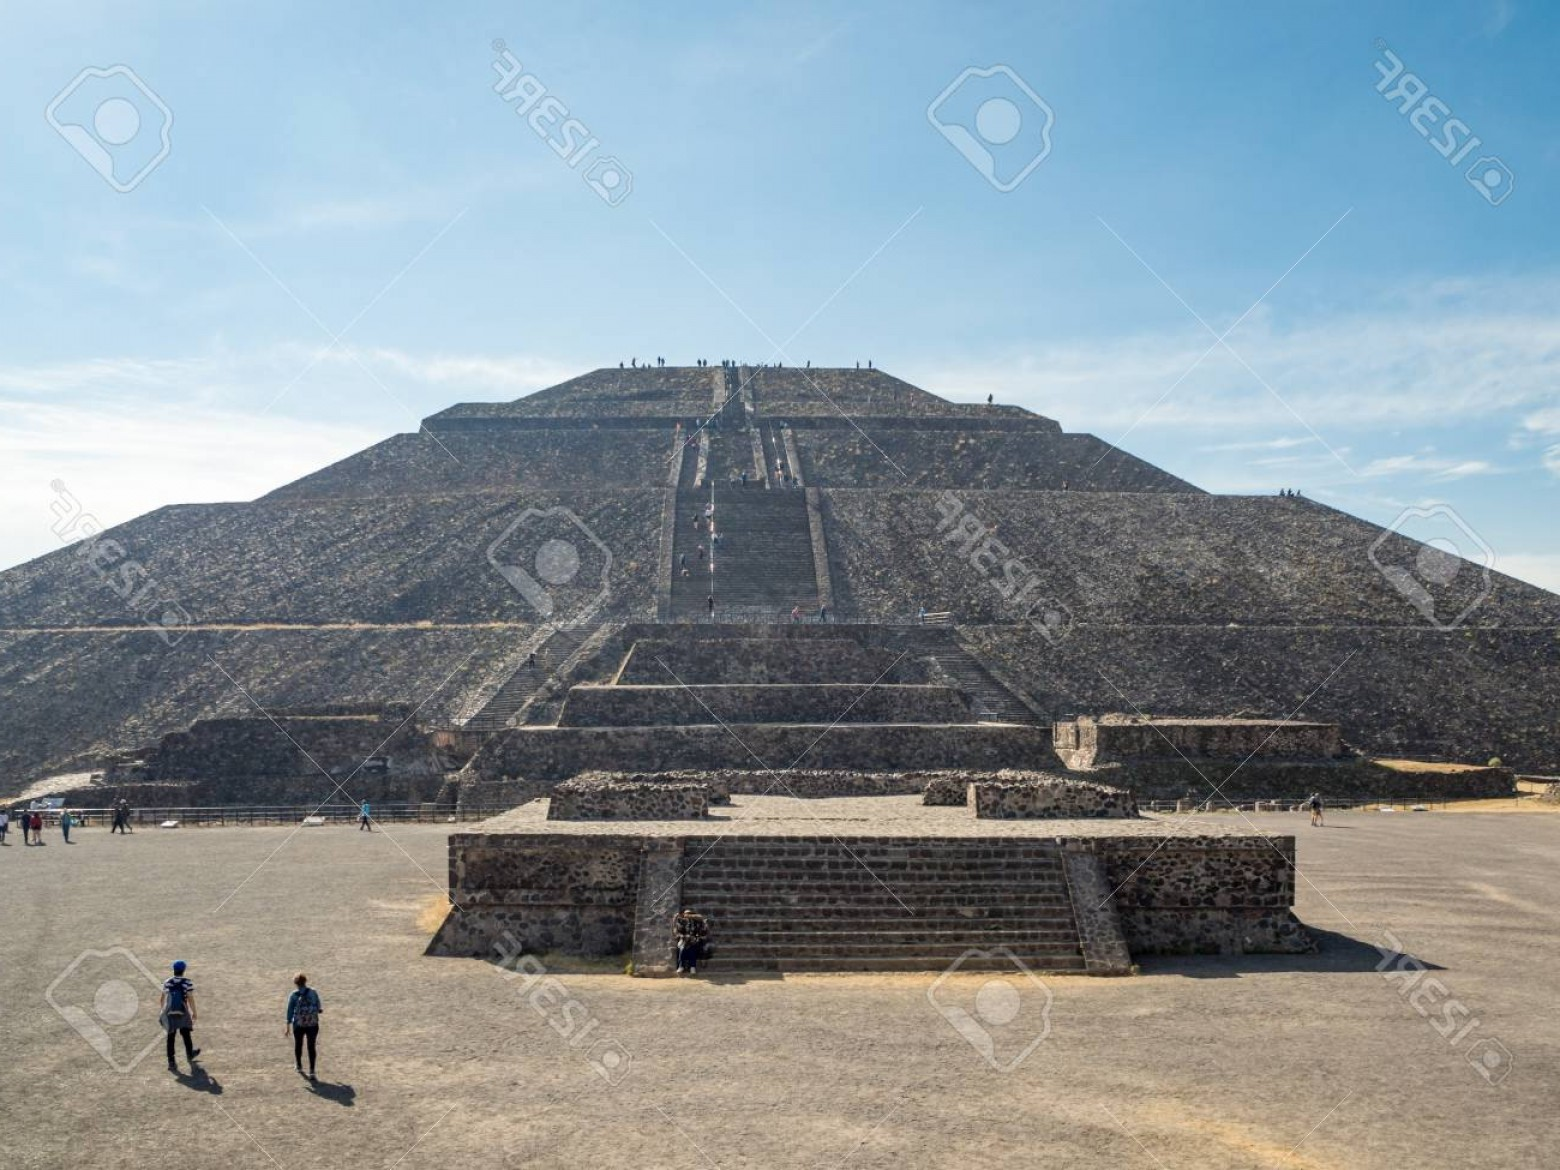 Vector South America Ancient Ruins: Phototeotihuacan Mexico City Mexico South America Janunary The Great Pyramid Of Sun And Moon Views O